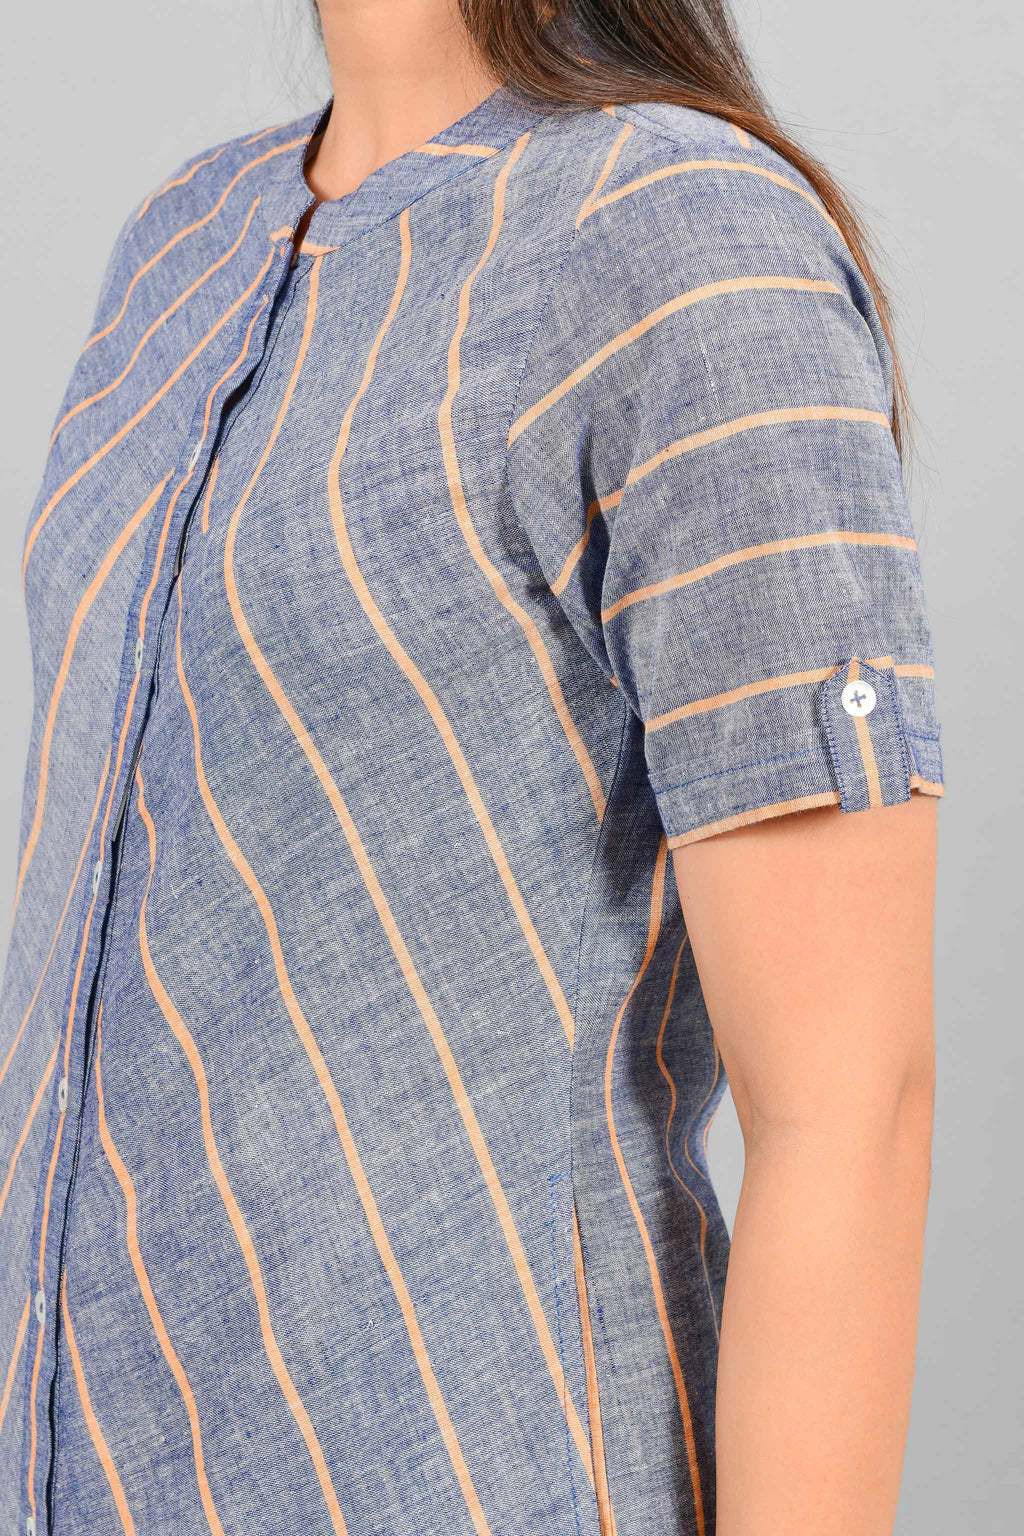 Close Up of an Indian female womenswear fashion model in a Blue chambray with orange stripes handspun and handwoven khadi cotton dress-kurta by Cotton Rack.